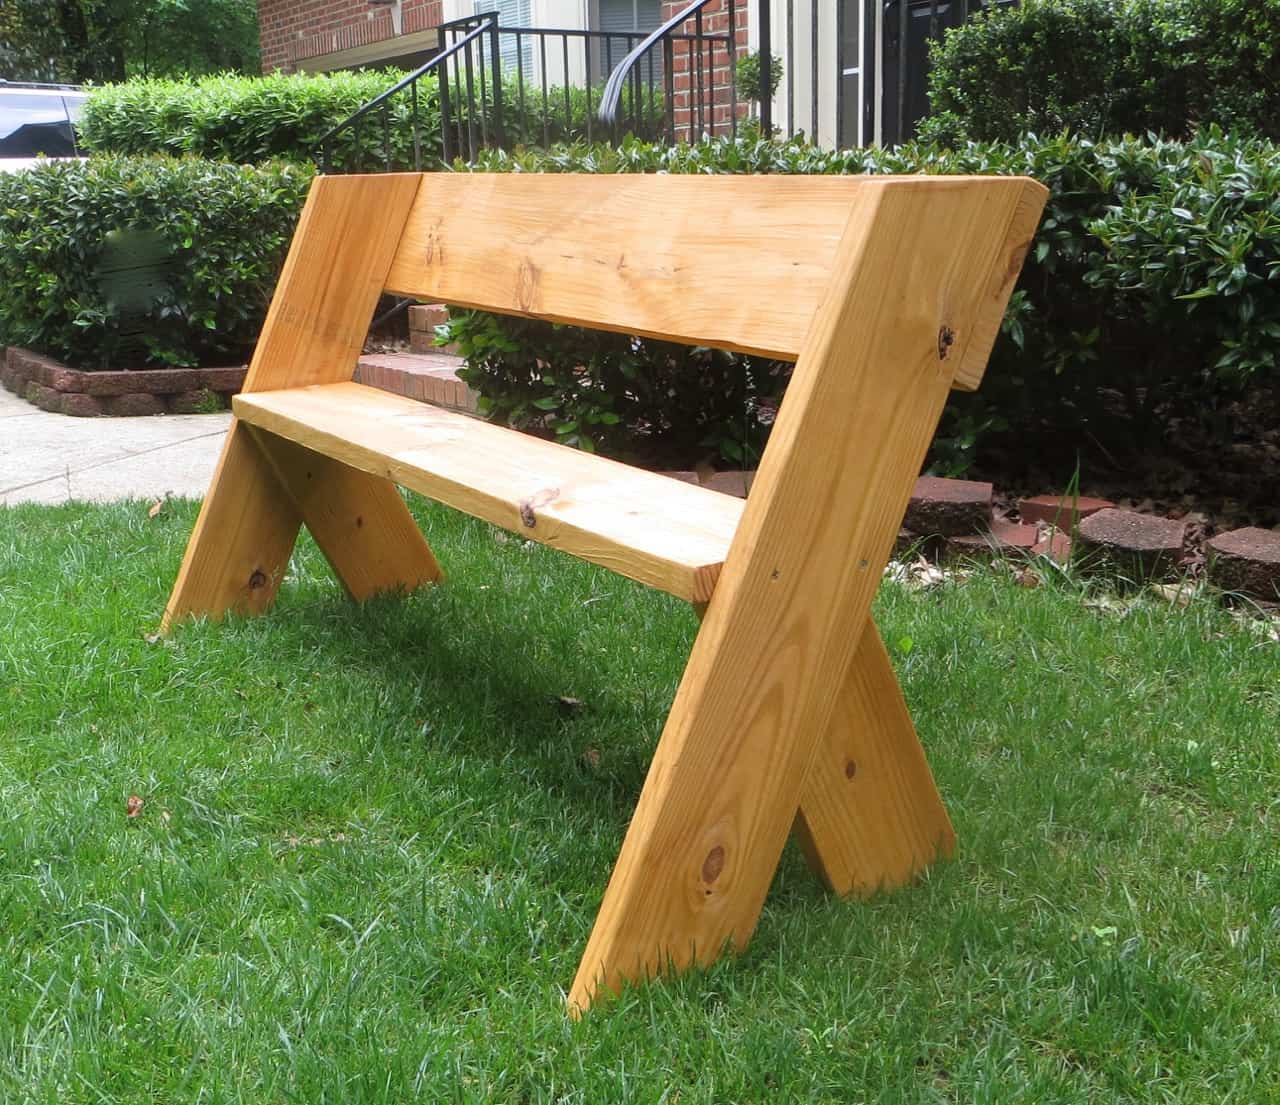 Simple Wooden Bench Designs ~ Diy outdoor wood projects